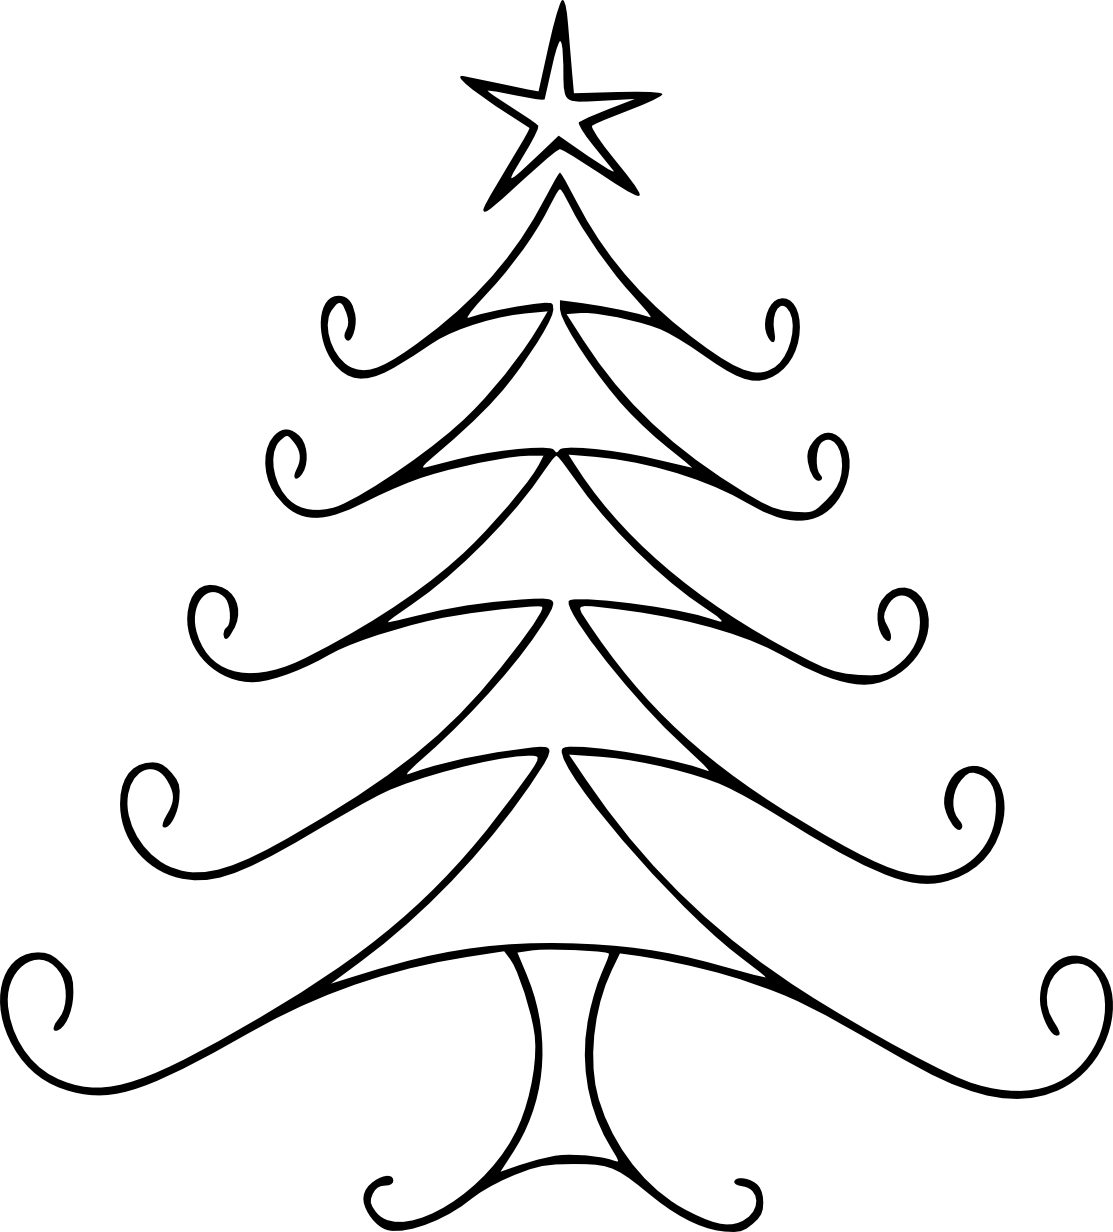 Funky christmas tree clipart jpg freeuse library Christmas Line Drawing - Cliparts. | CRAFT - HOLIDAYS | Pinterest ... jpg freeuse library